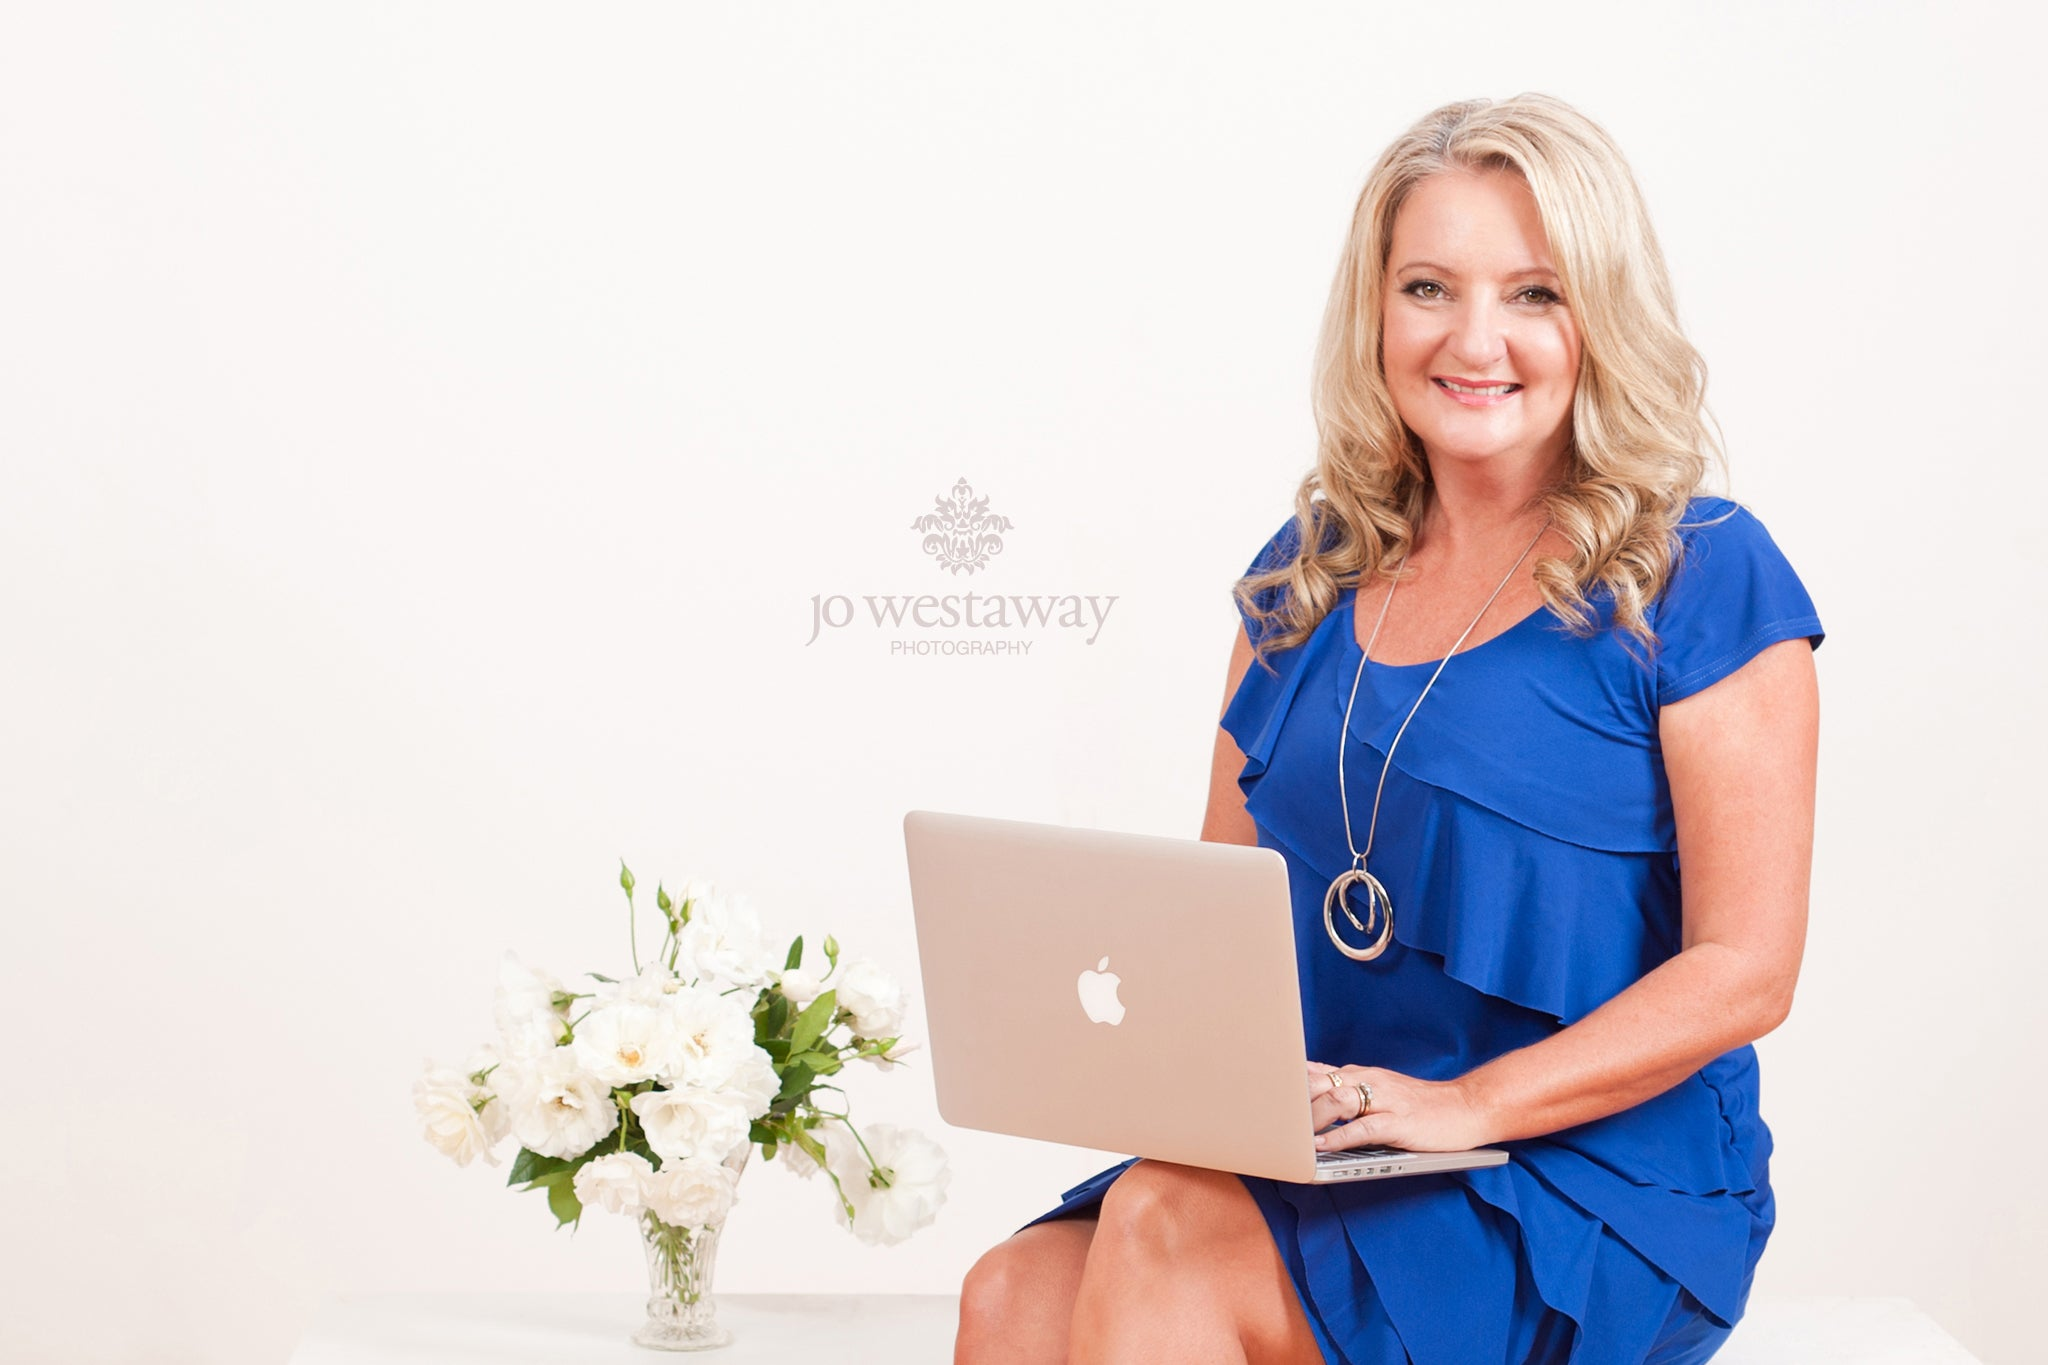 Not still and corporate headshots and personal brand photos for female business owners and entrepreneurs Brisbane's leading photographer